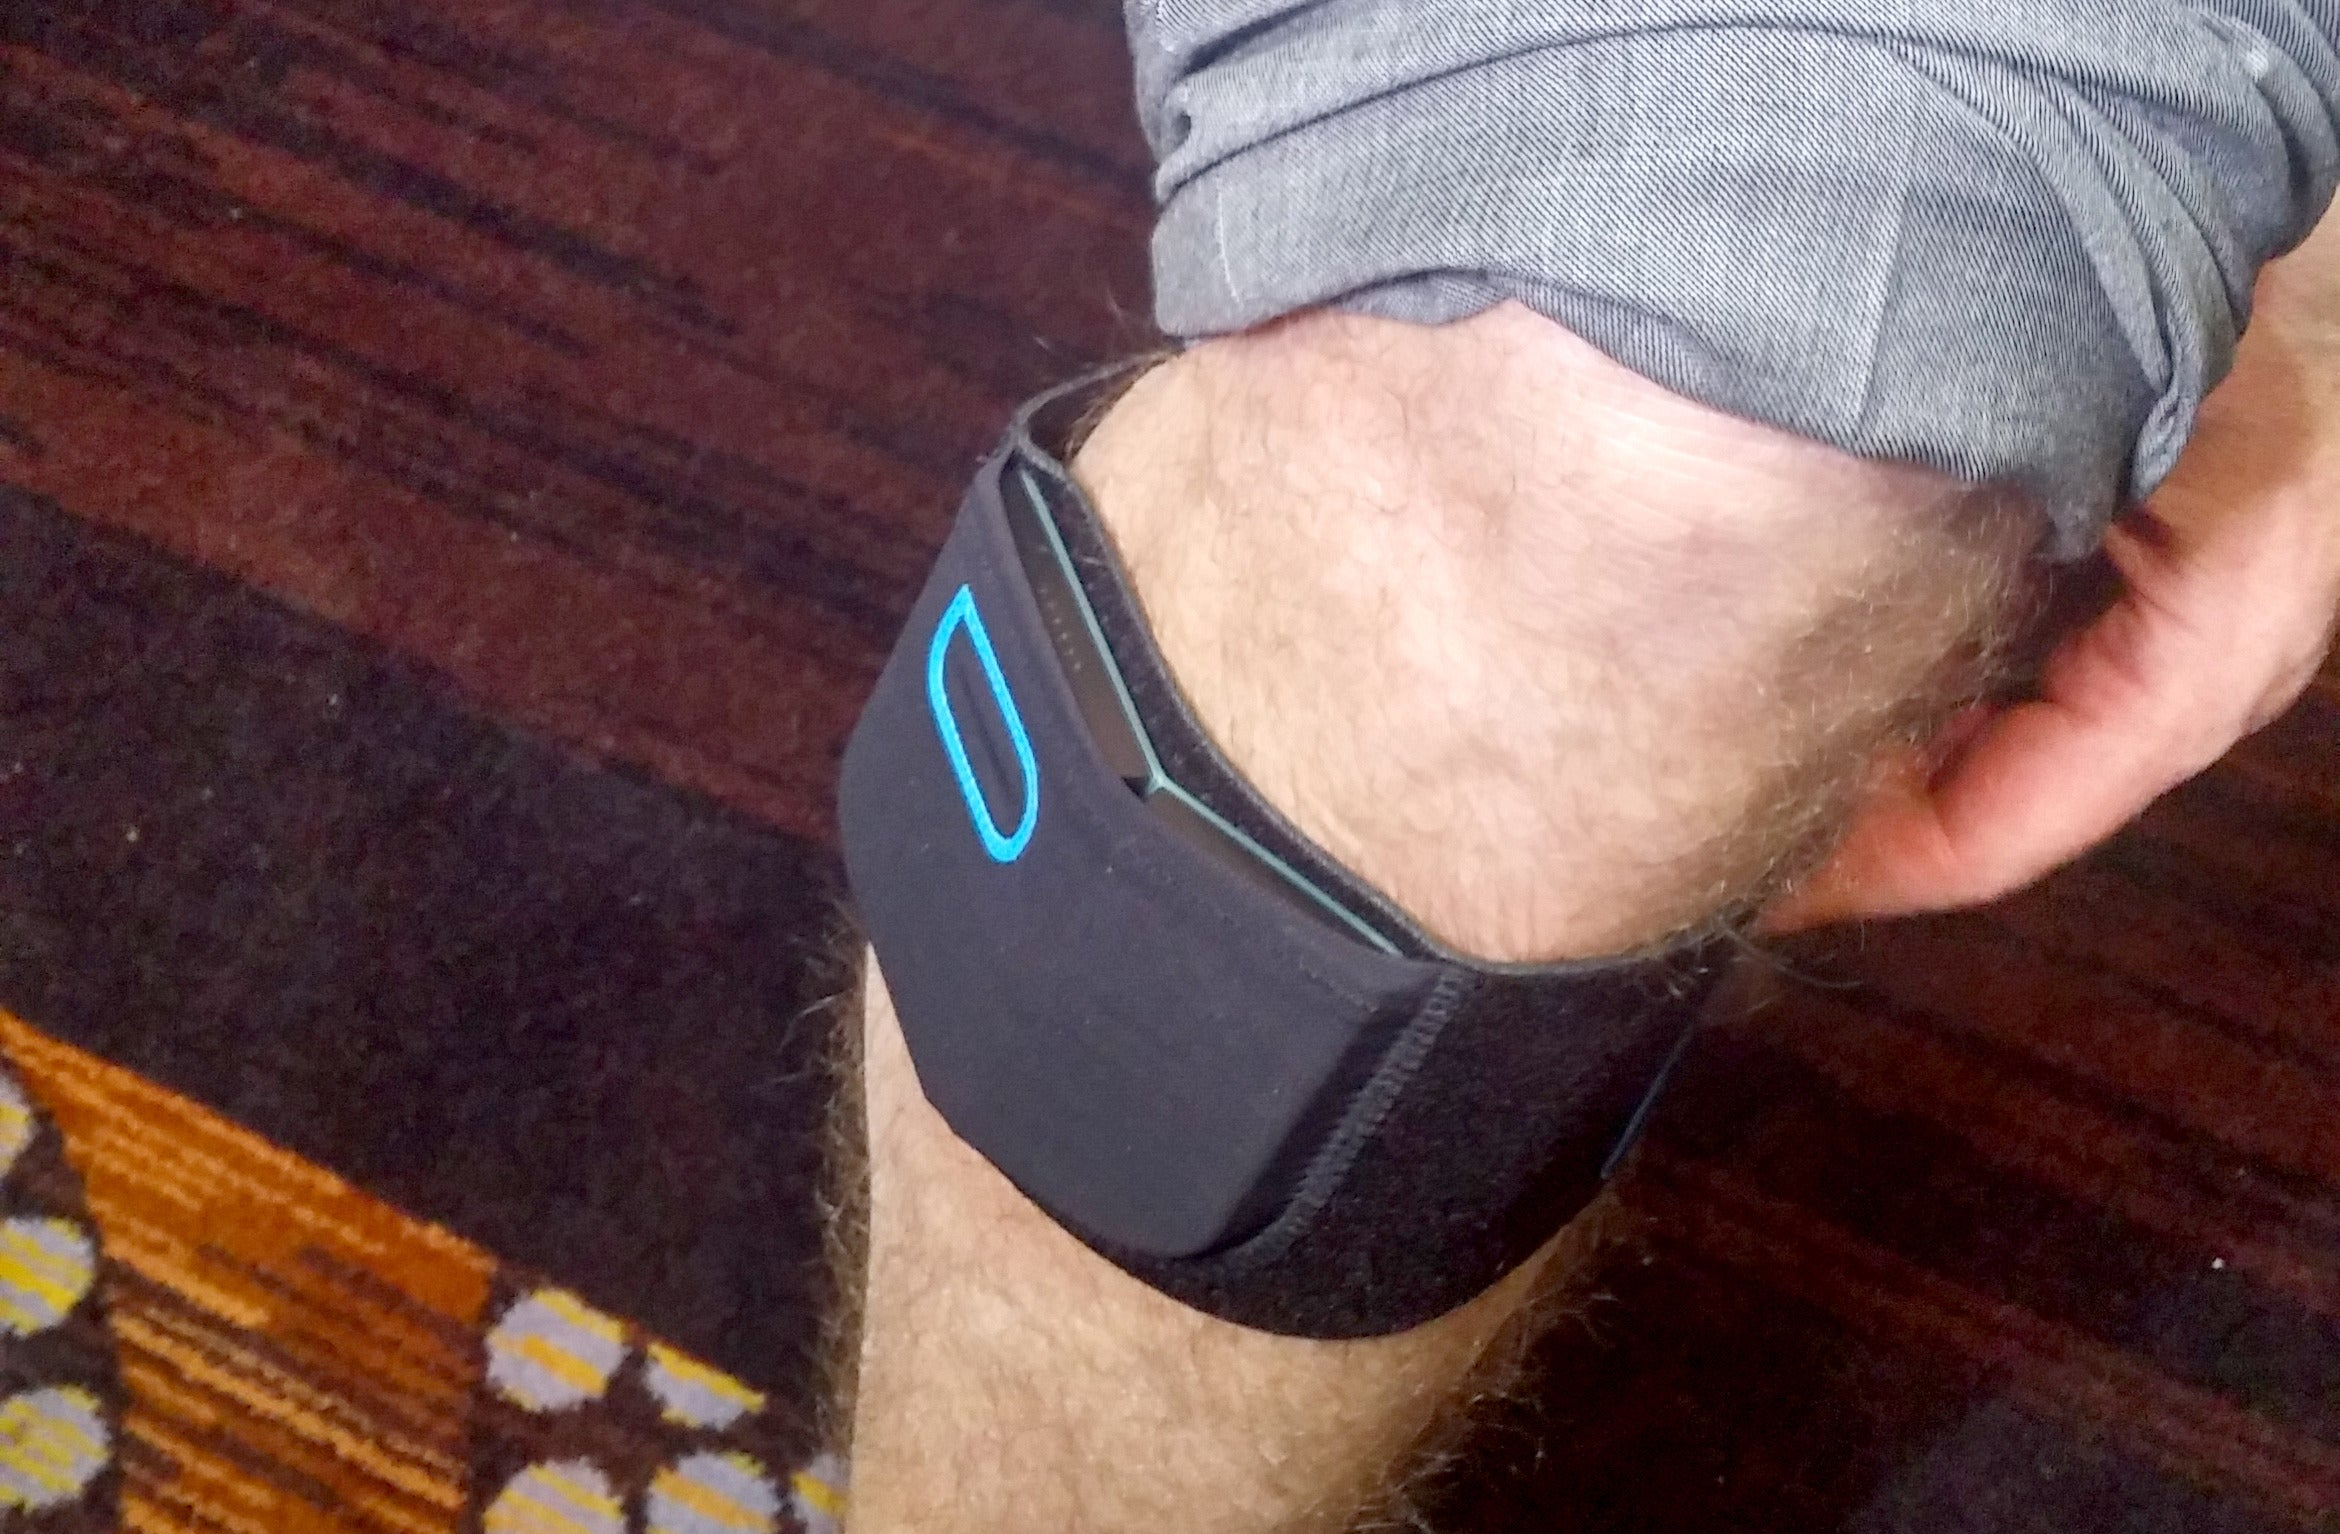 Quell is a wearable pain manager that stimulates your brain's natural ...: http://www.pcworld.com/article/2864855/quell-is-a-wearable-pain-manager-that-stimulates-your-brains-natural-opiates.html